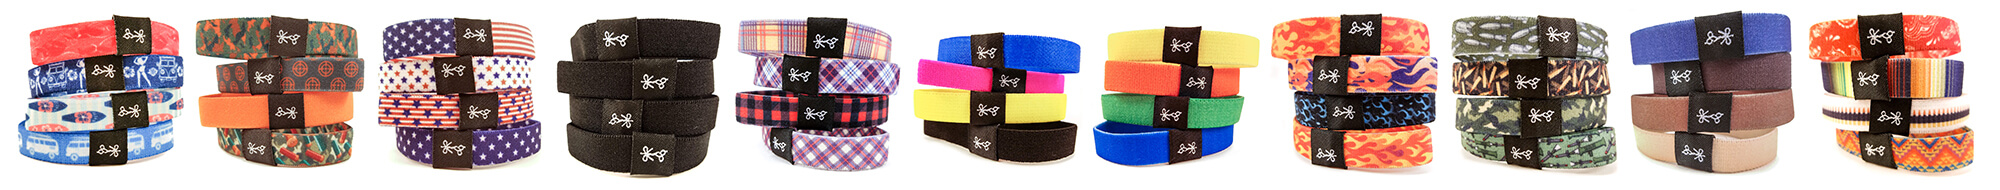 Hair Ties For Guys